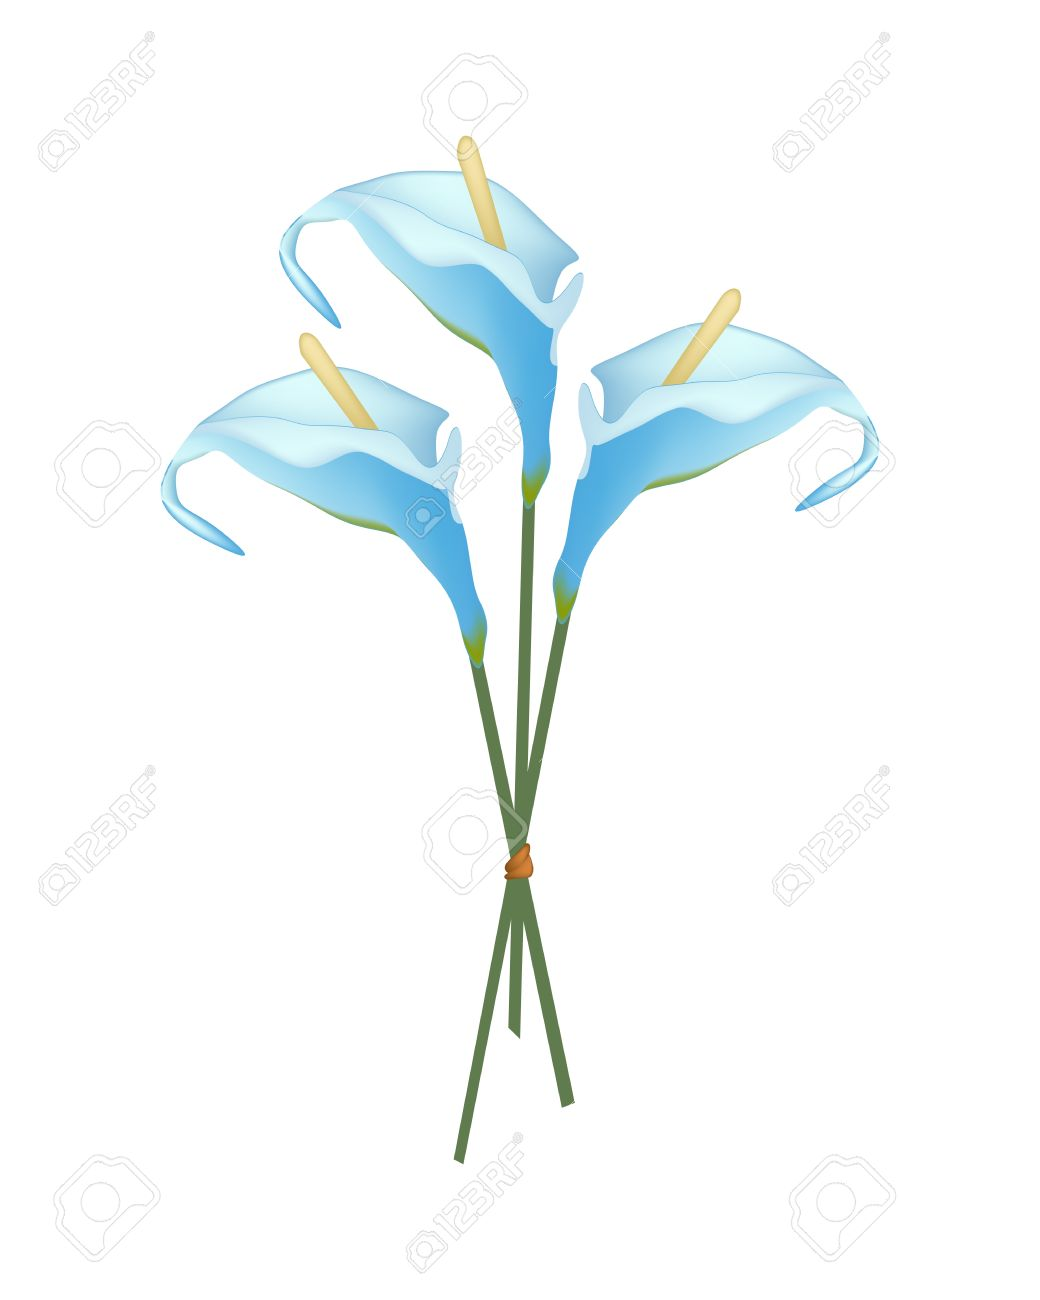 Beautiful Flower, Illustration Of Bouquet Of Blue Anthurium Flower.